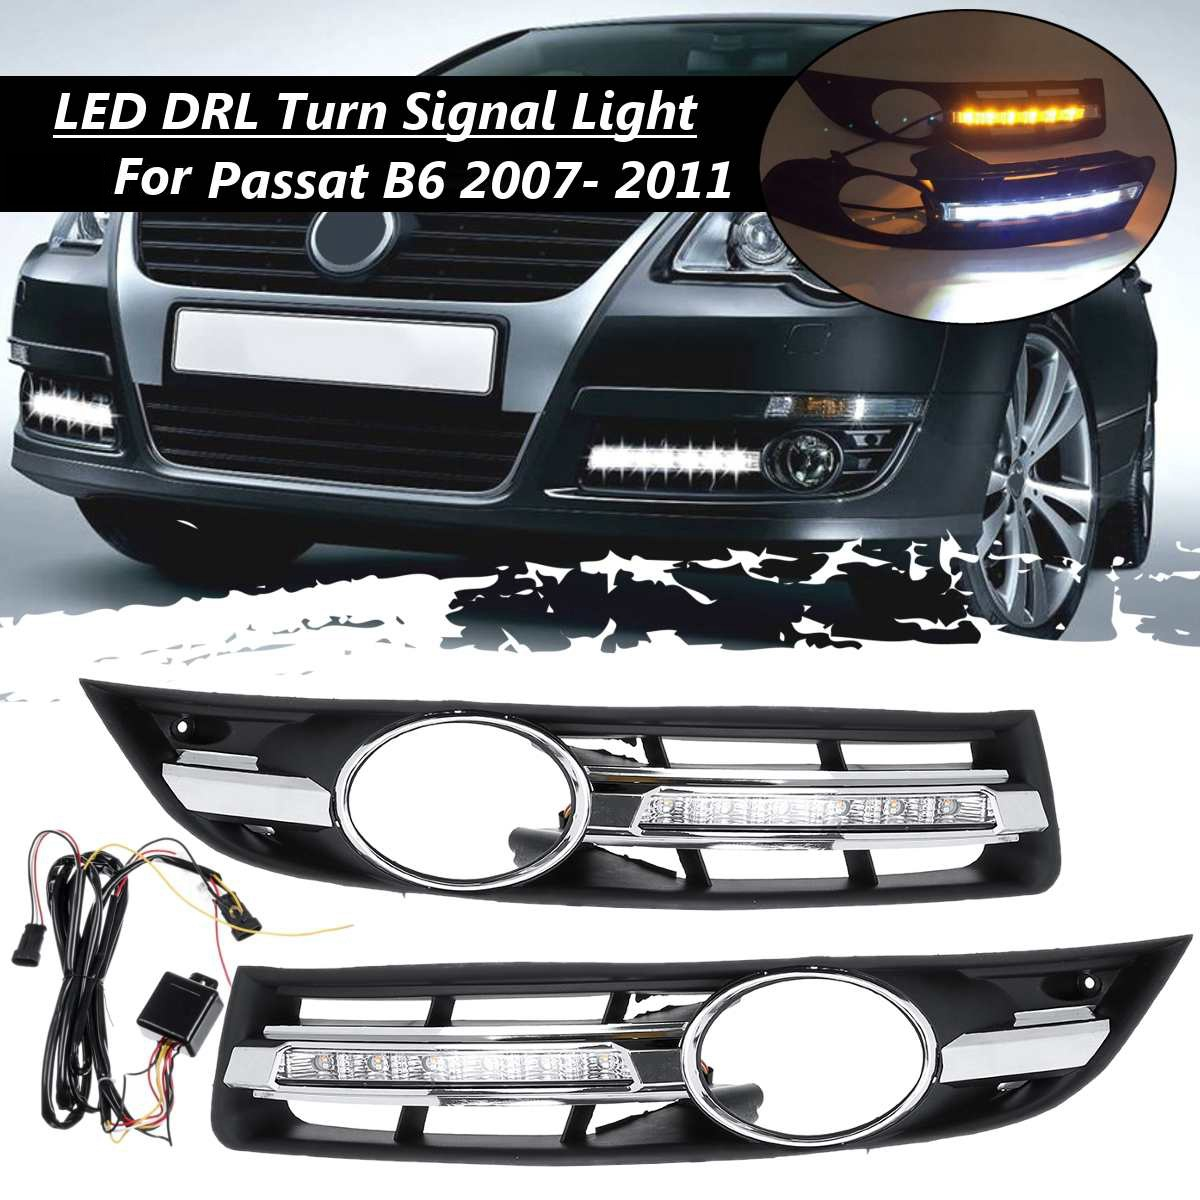 Car LED DRL Light Daytime Running Light with Grill Surround for VW Passat B6 2006 2011 Waterproof|Racing Grills| |  - title=